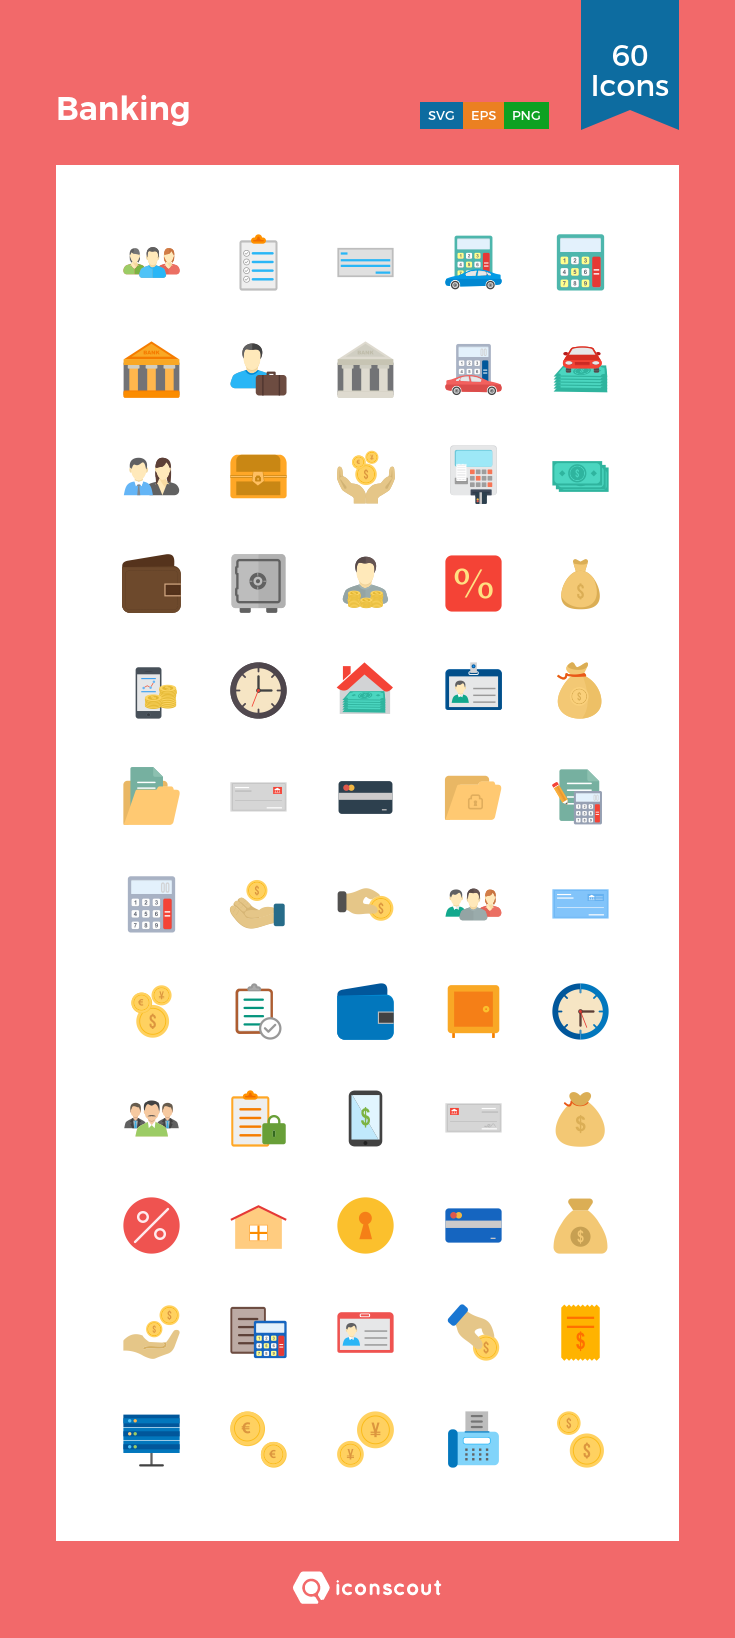 Download Banking Icon pack Available in SVG, PNG, EPS